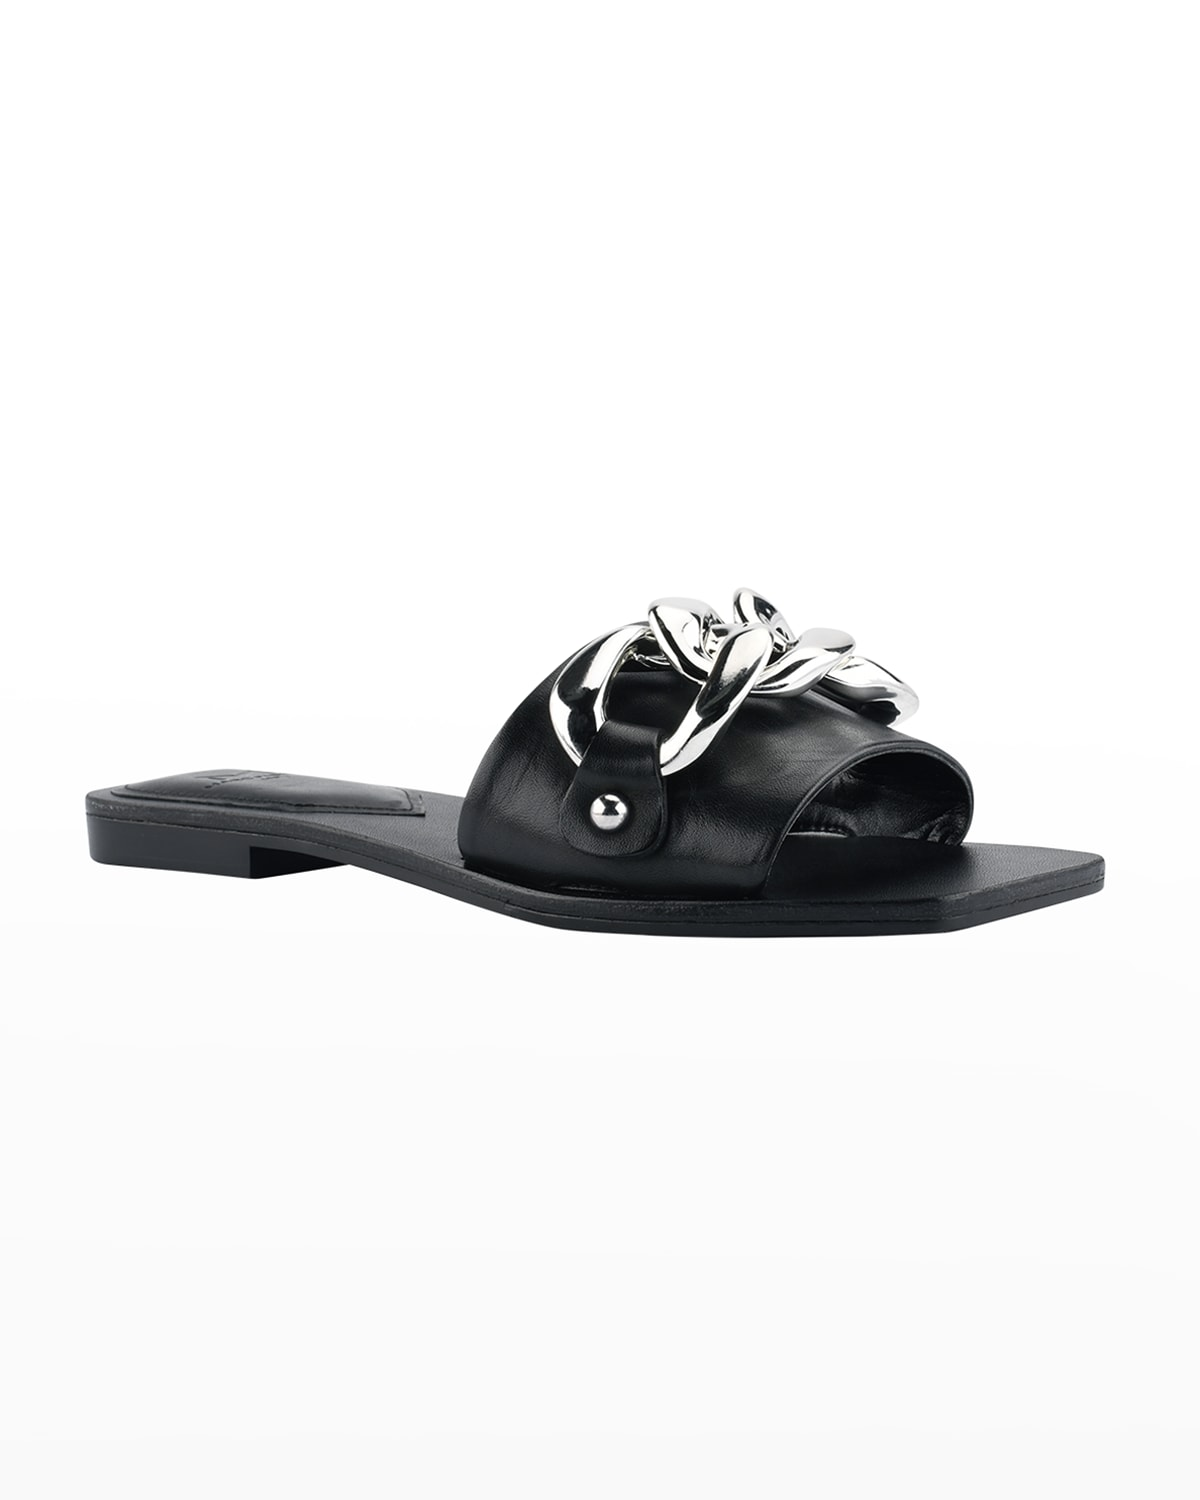 Rosely Chain Flat Slide Sandals